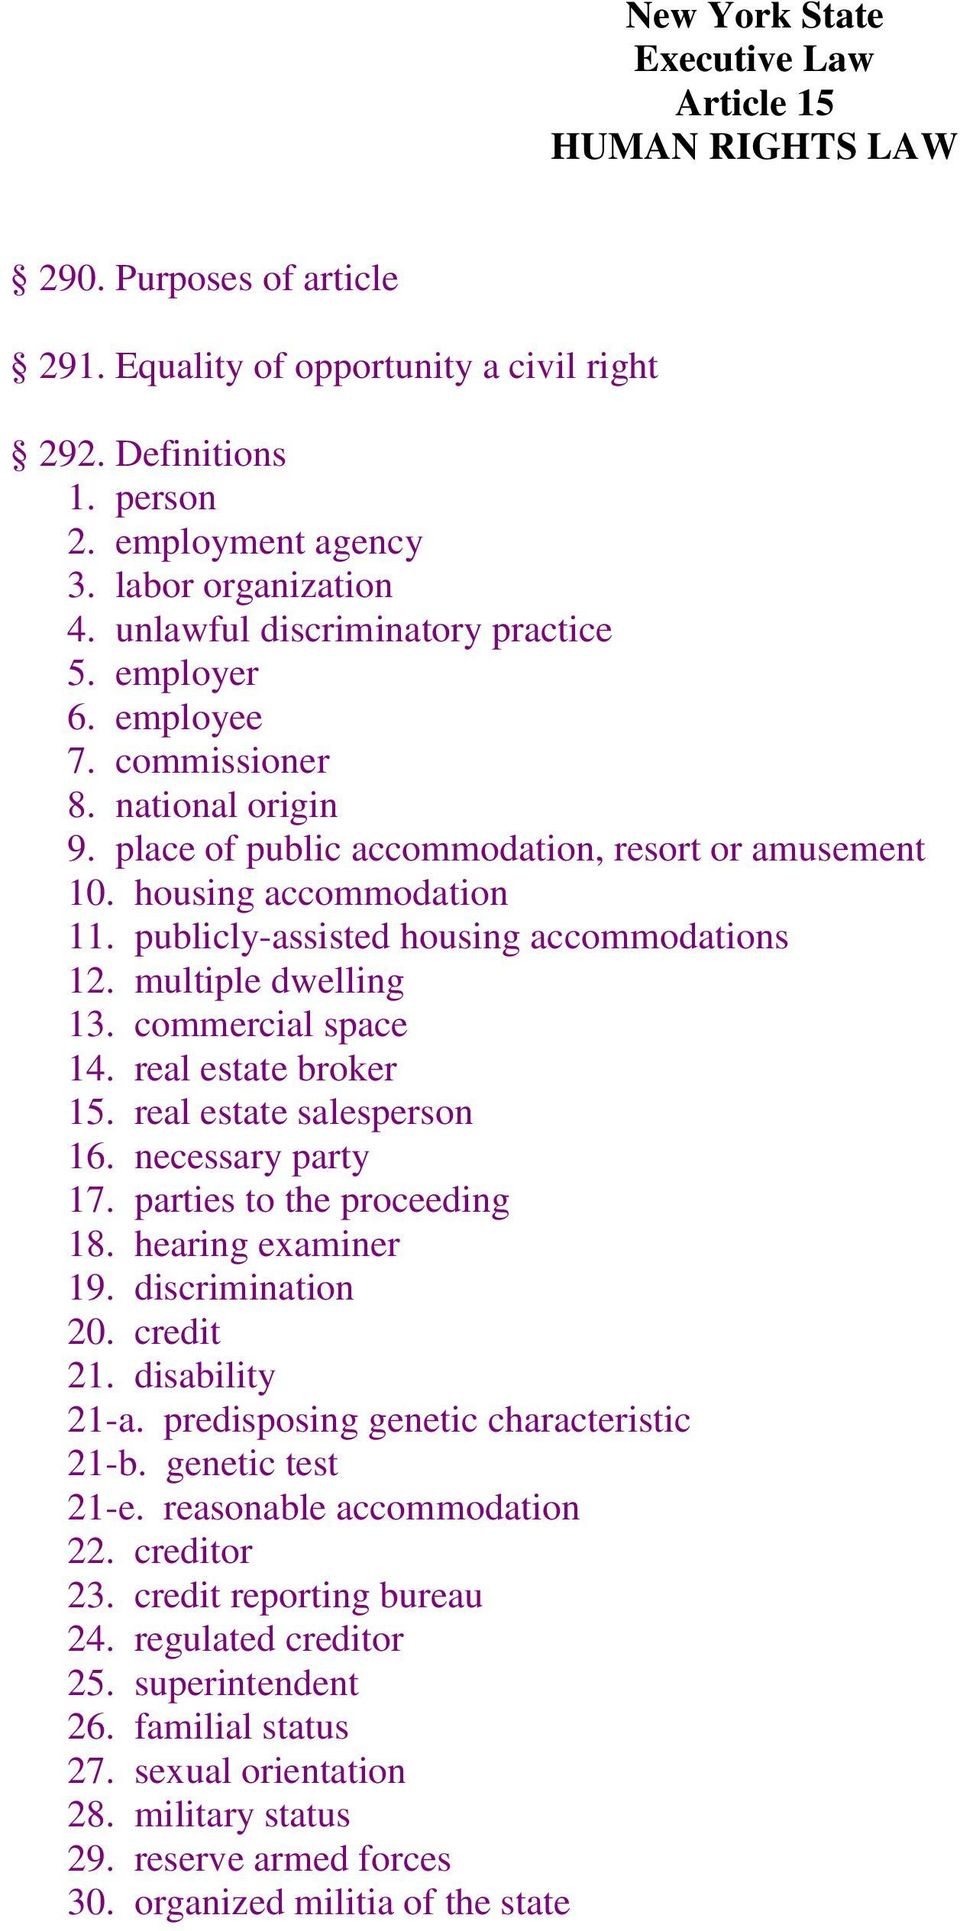 publicly-assisted housing accommodations 12. multiple dwelling 13. commercial space 14. real estate broker 15. real estate salesperson 16. necessary party 17. parties to the proceeding 18.